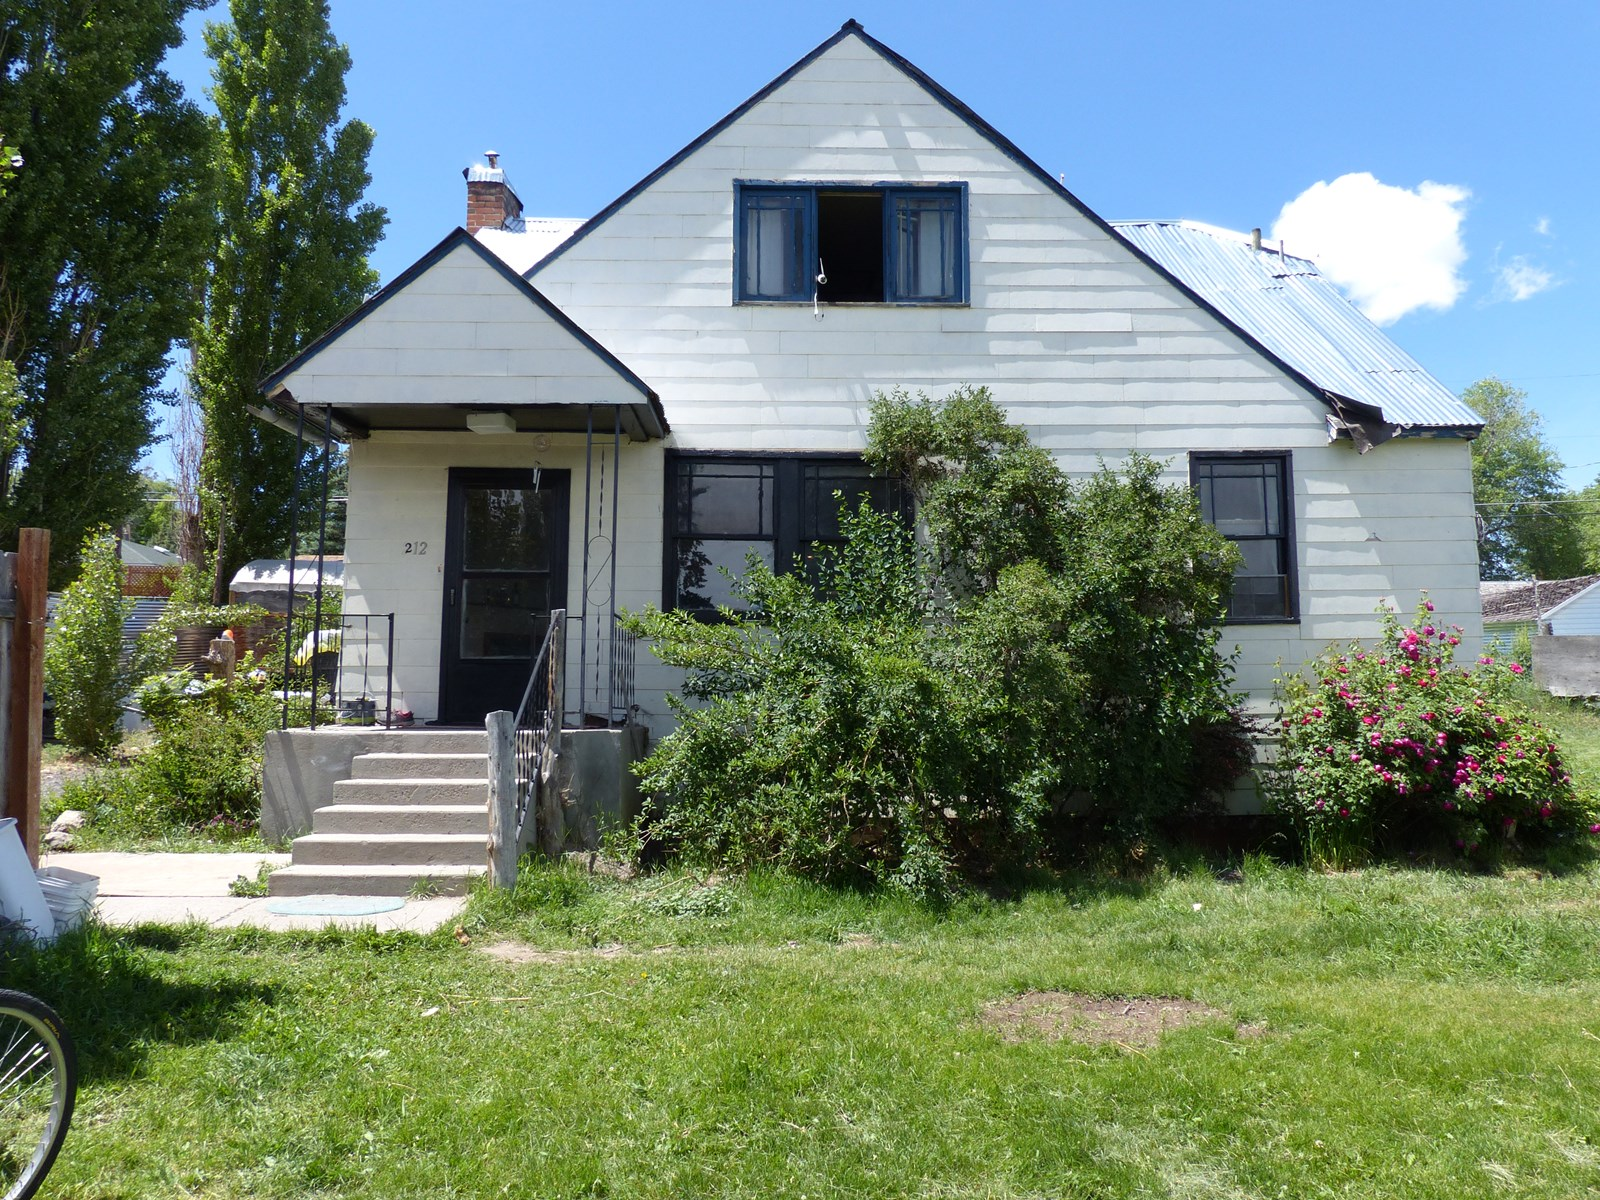 2 STORY HOME IN HINES OR FOR SALE